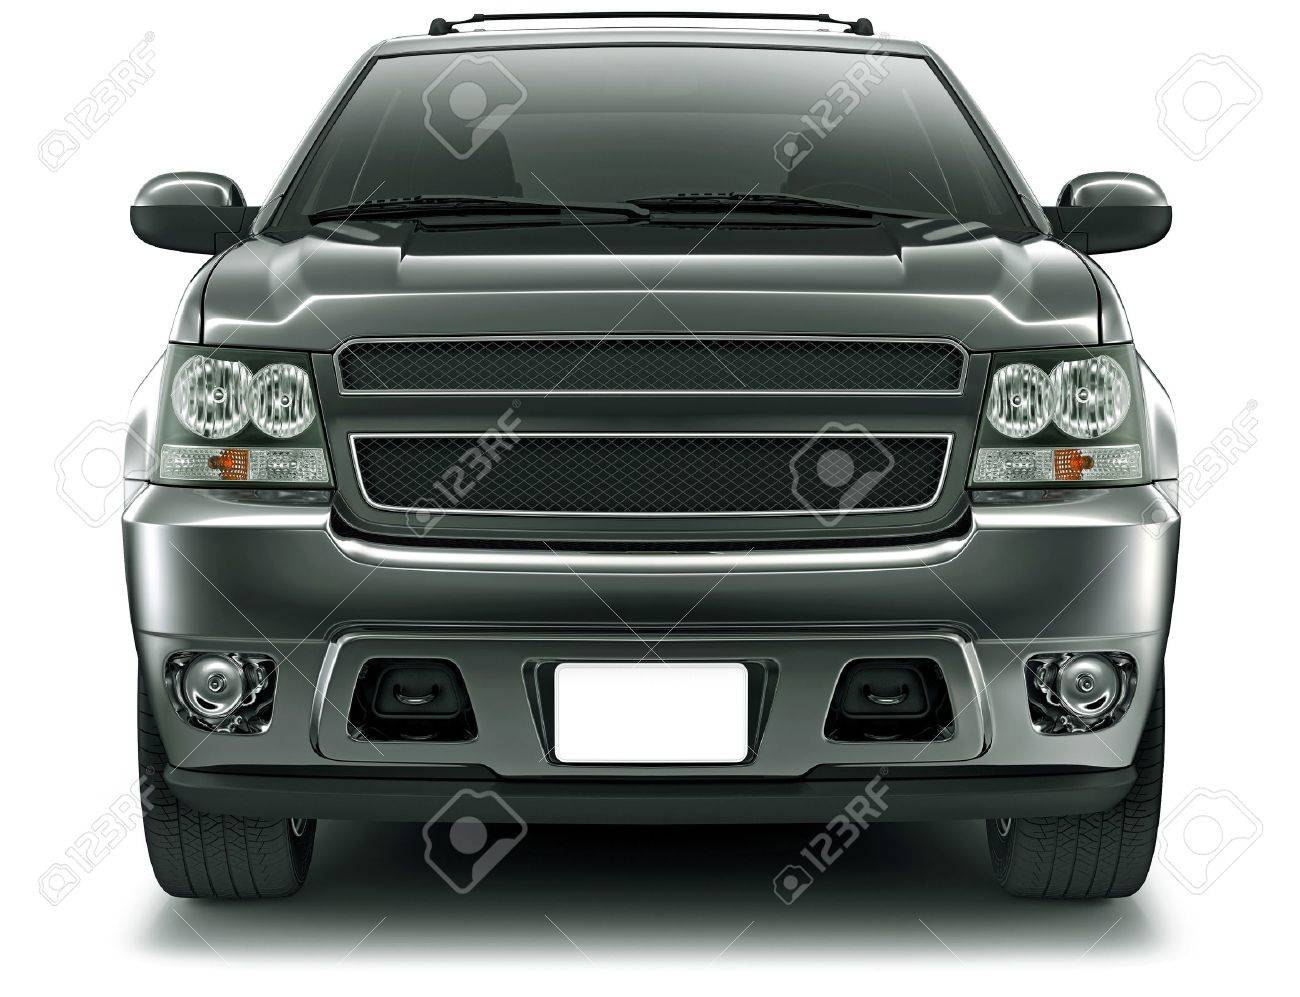 pickup truck stock photos royalty free pickup truck images and